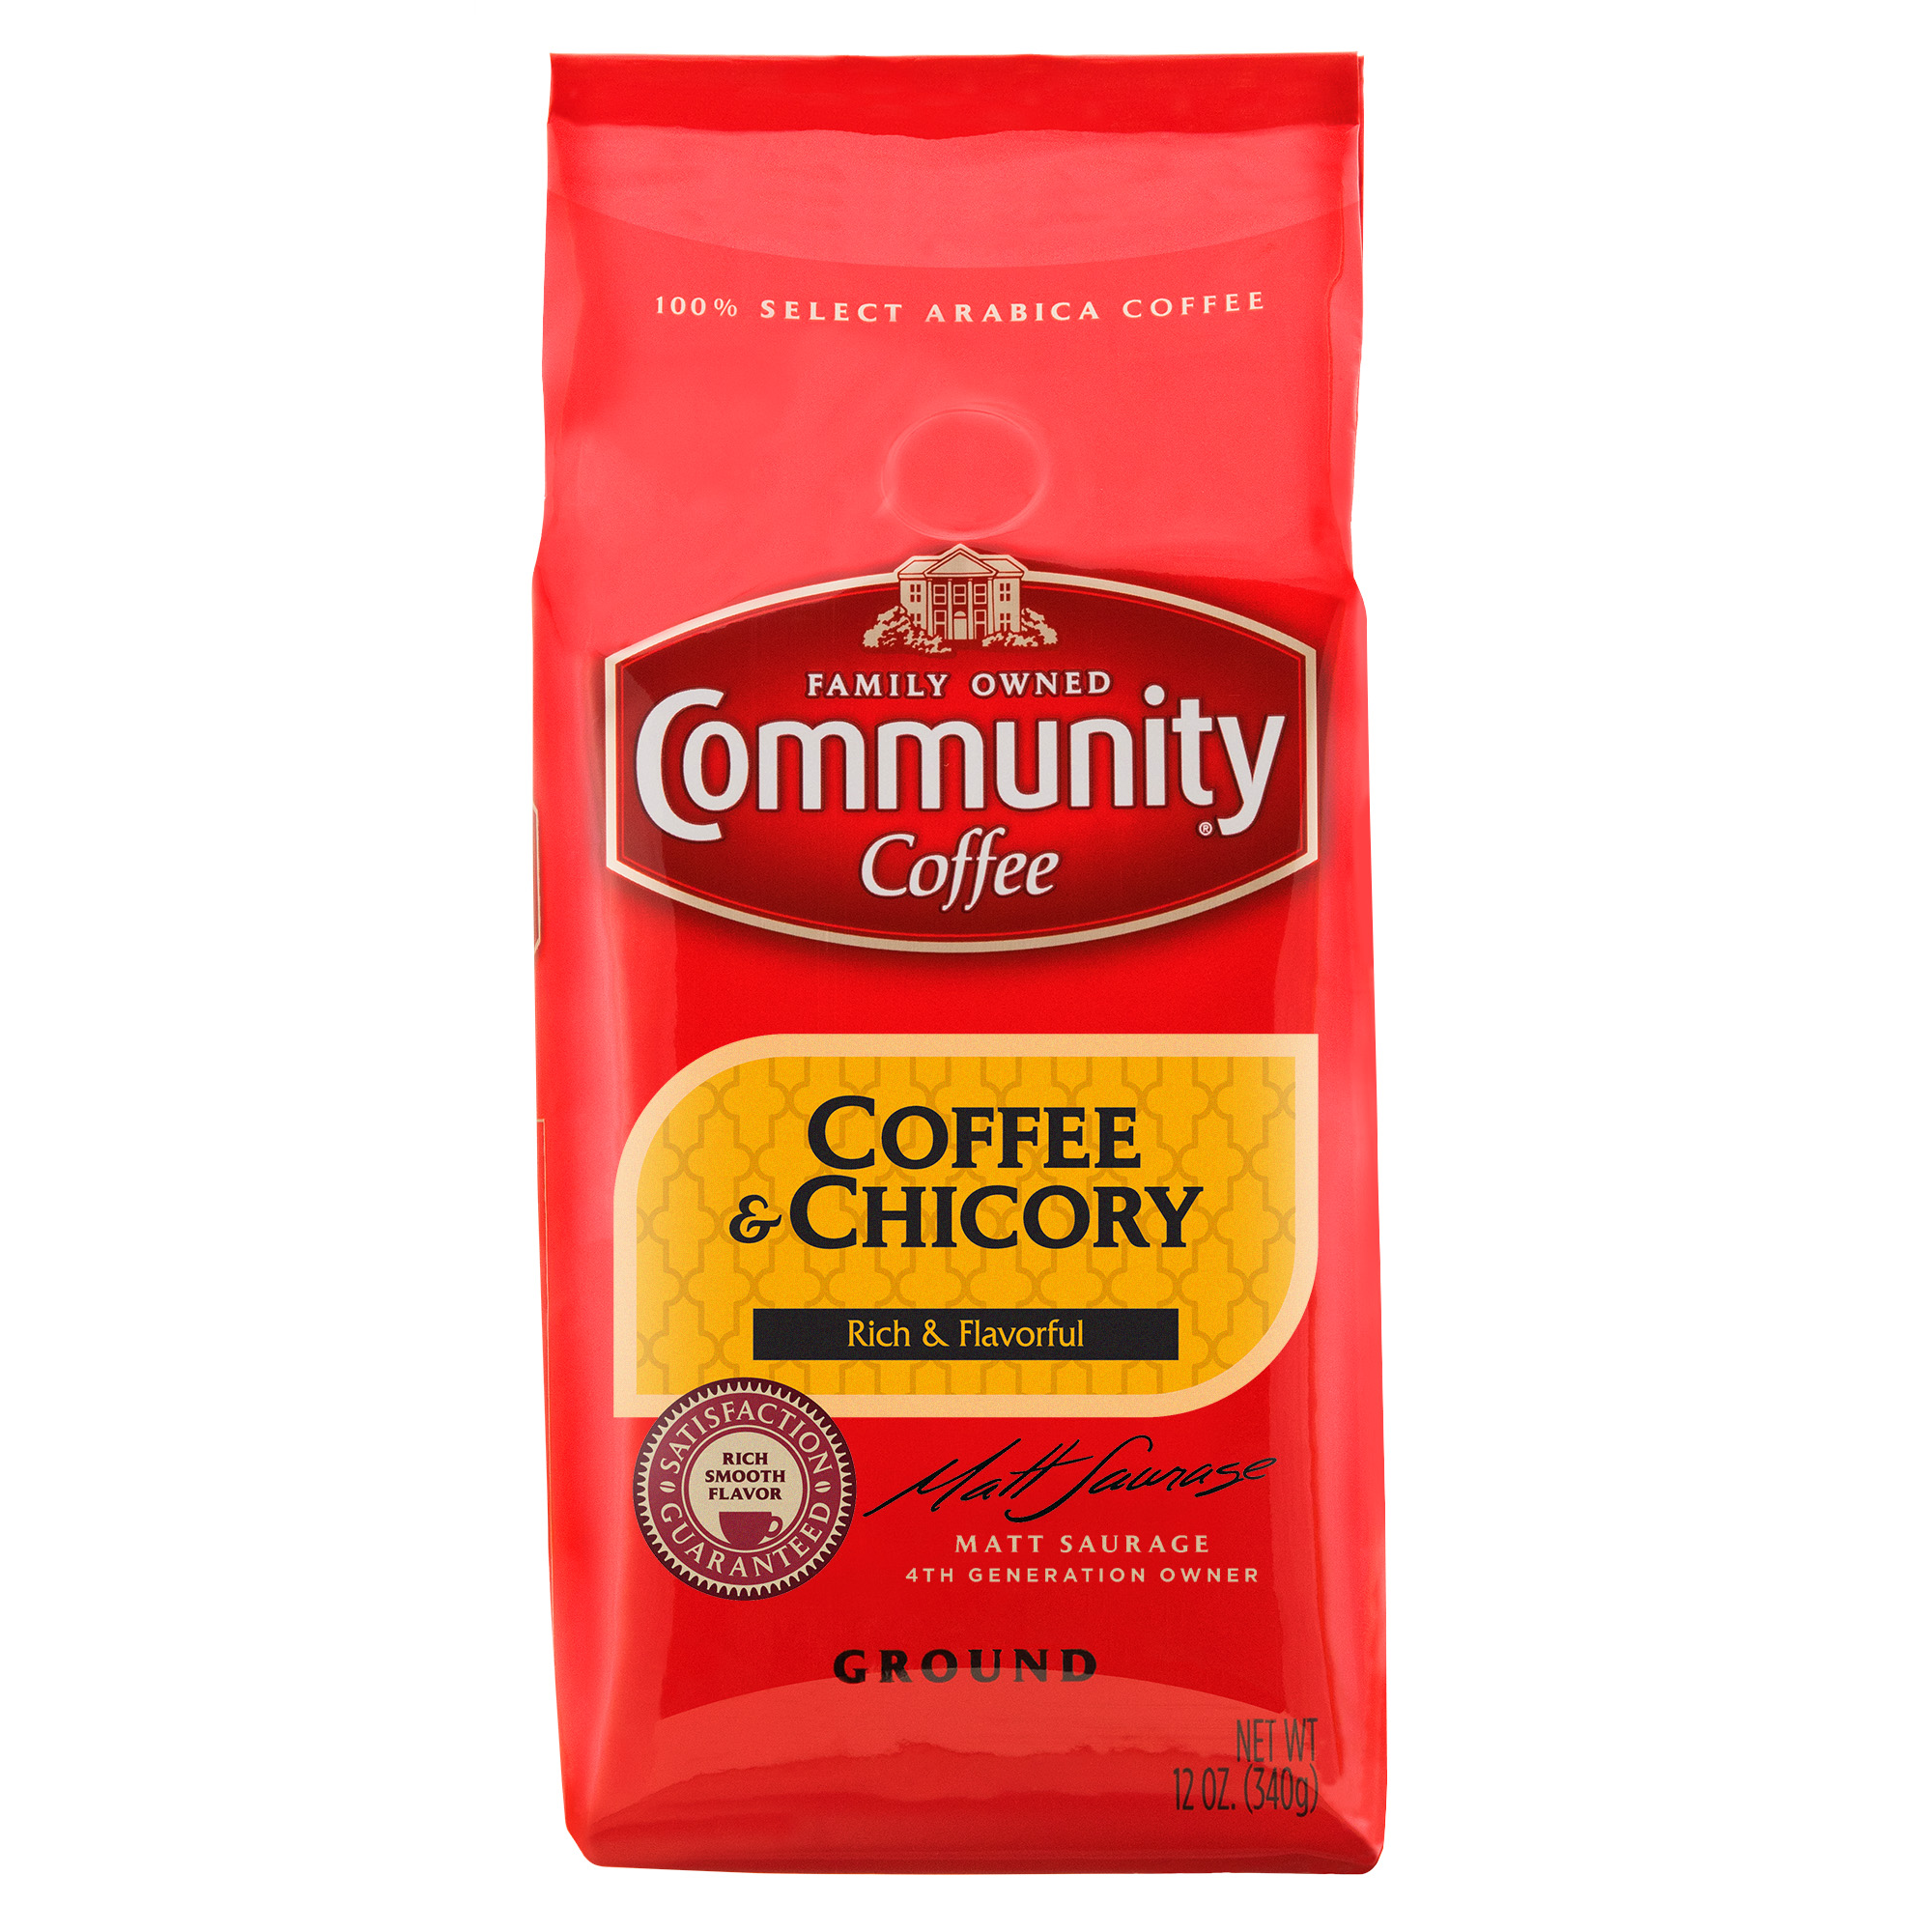 Community Coffee Premium Ground Coffee and Chicory Medium-Dark Roast Coffee, 12 Ounce